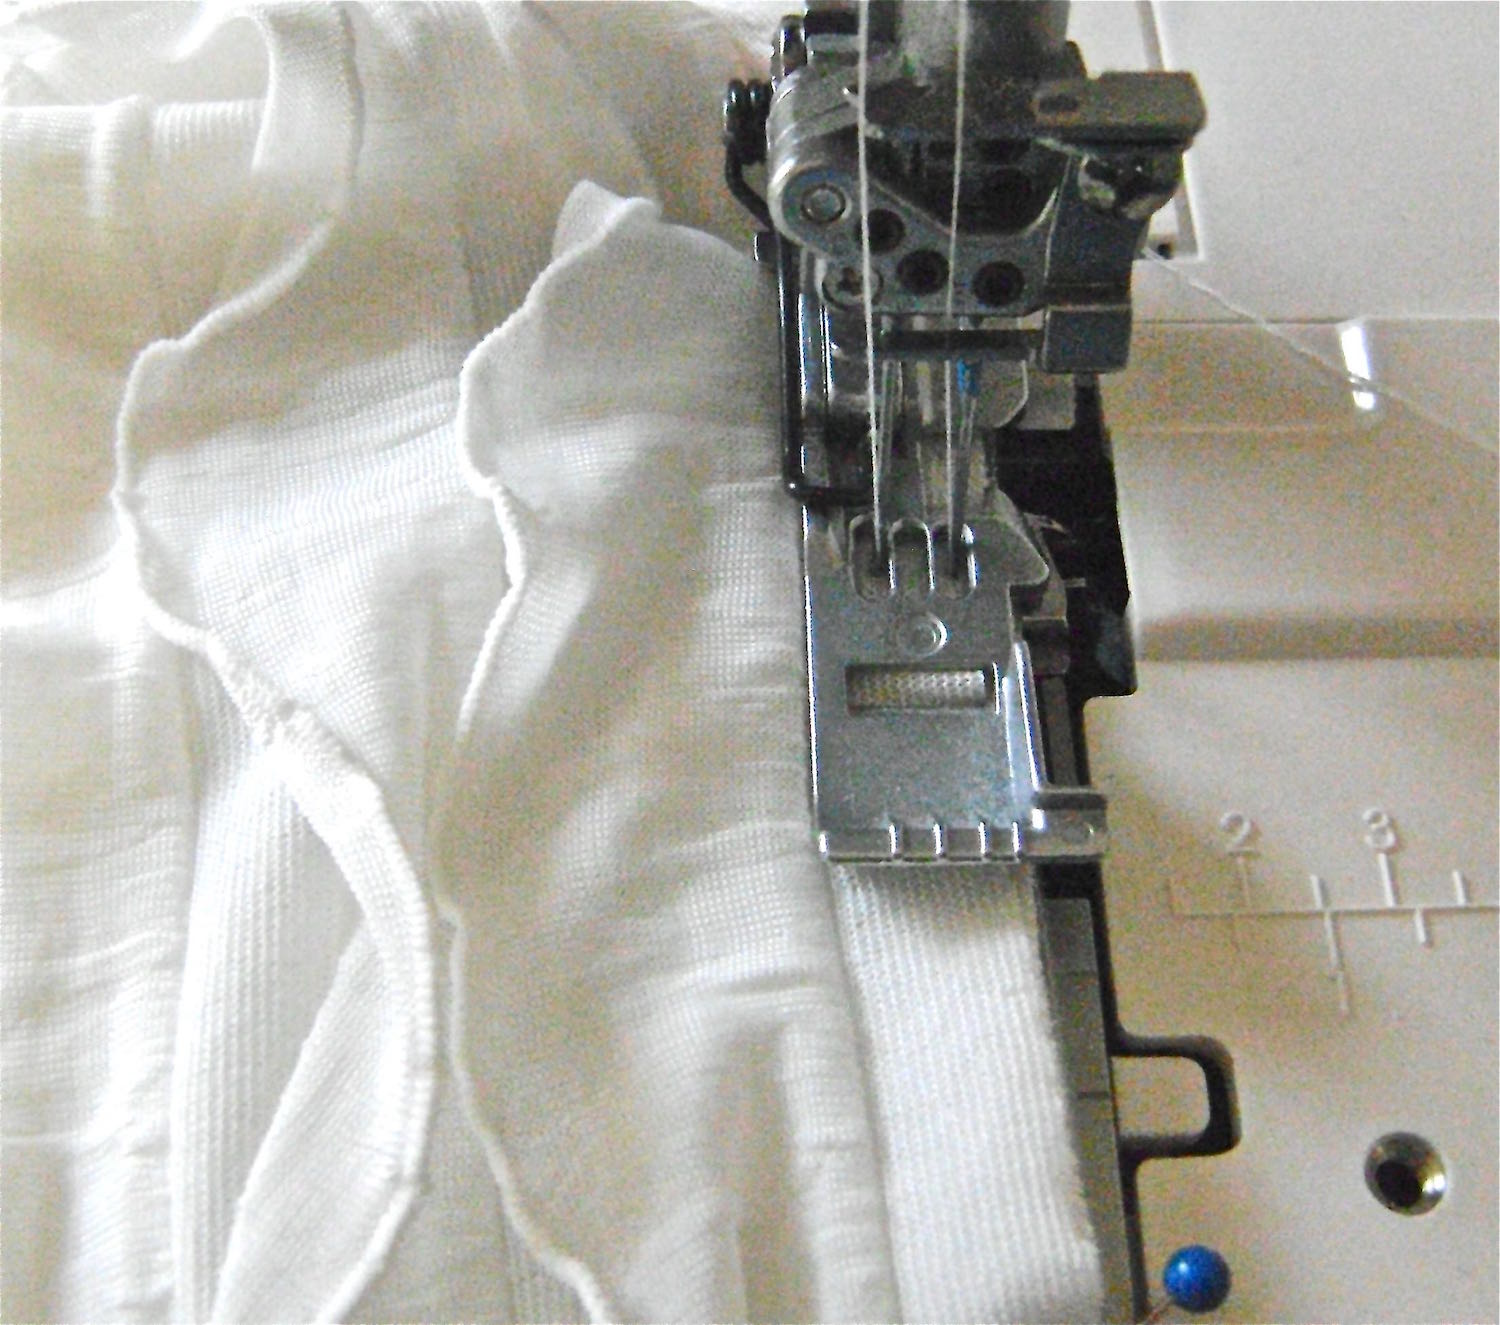 """step 6 - Stitching ½"""" from the raw edge, sew through the ruffle margin, shirt fabric, and stay tape, beginning at the shoulder and ending at the slit in the """"V"""". Finish the 3 joined edges with a zigzag or overlock stitch."""